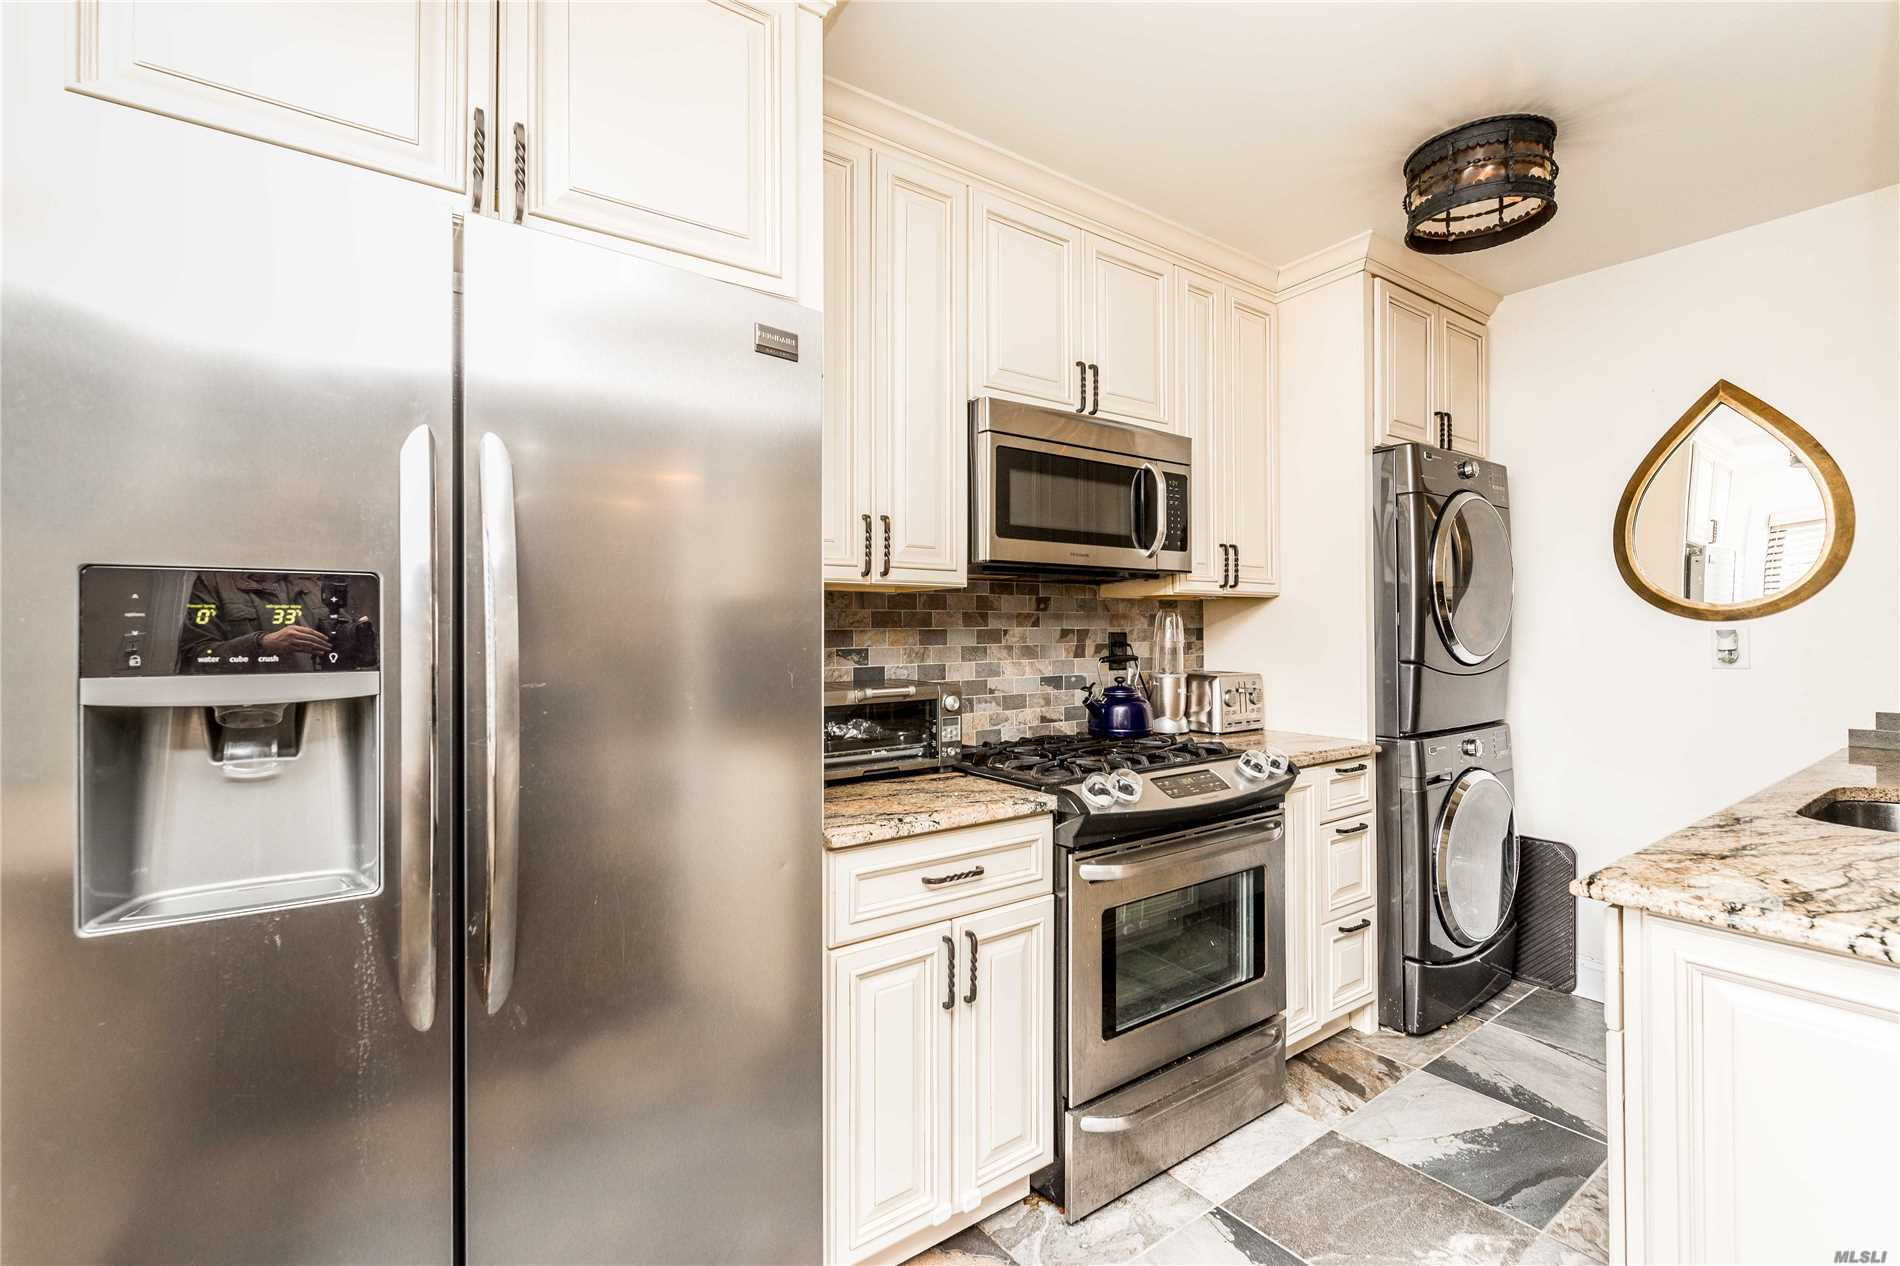 Stunning Renovated 2 Bedroom C Line Apartment At Beech Hills. Open Living Room And Dining Area. Beautifully Renovated Kitchen With Frigidaire Stainless Steel Appliances, Granite Counters And Soft-Close Cabinets And Draws. Bathroom Is Custom Designed With Floor To Ceiling Tile. All Utilities Are Included In Maintenance. Near Shopping And Transportation. Cat Okay.